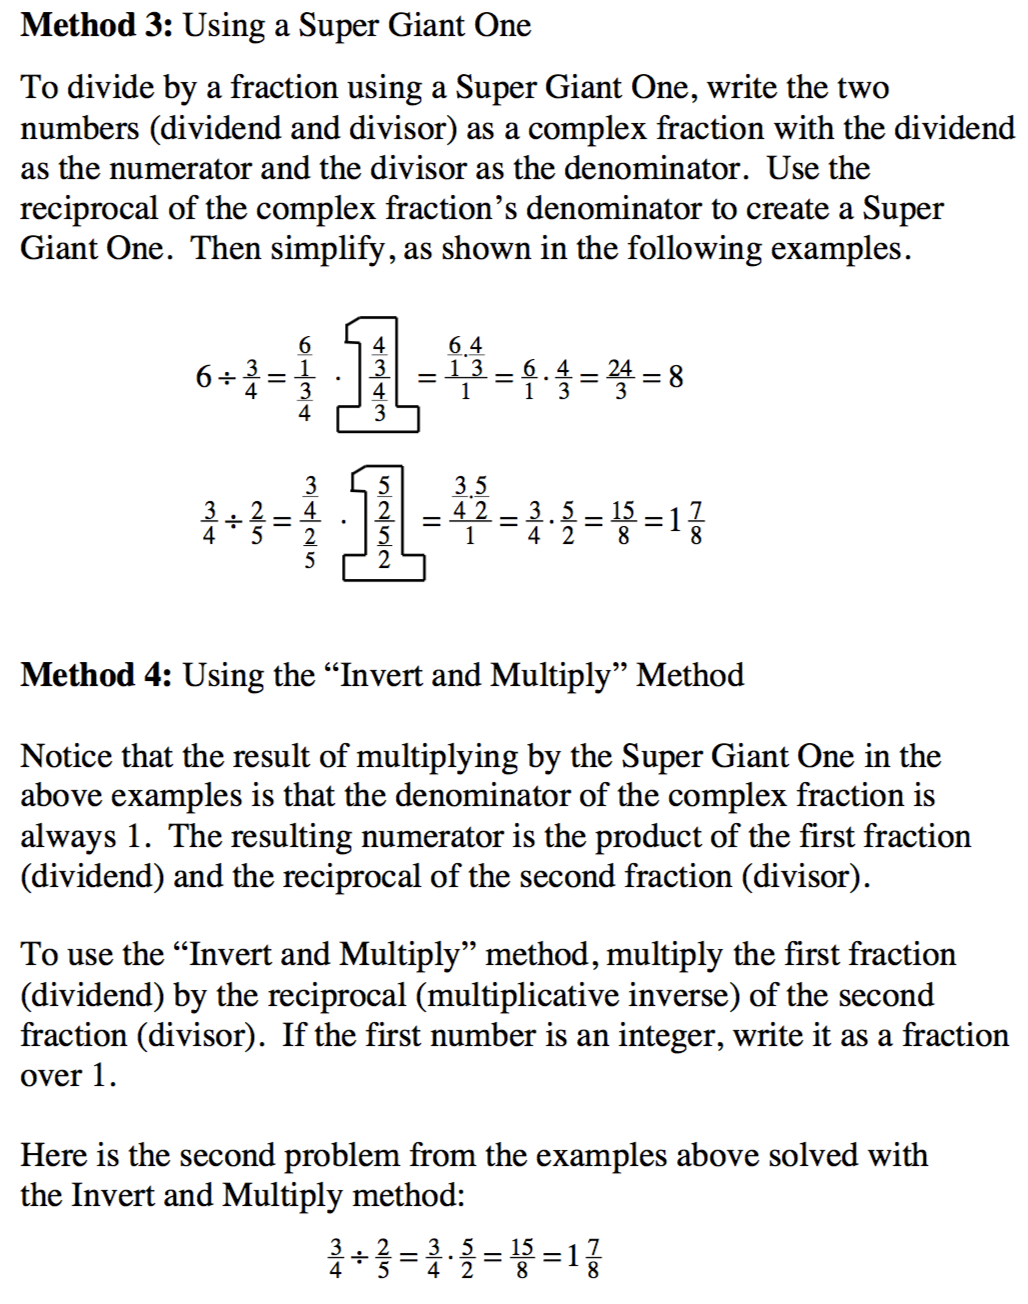 Math notes: Method 3 Using a Super Giant One